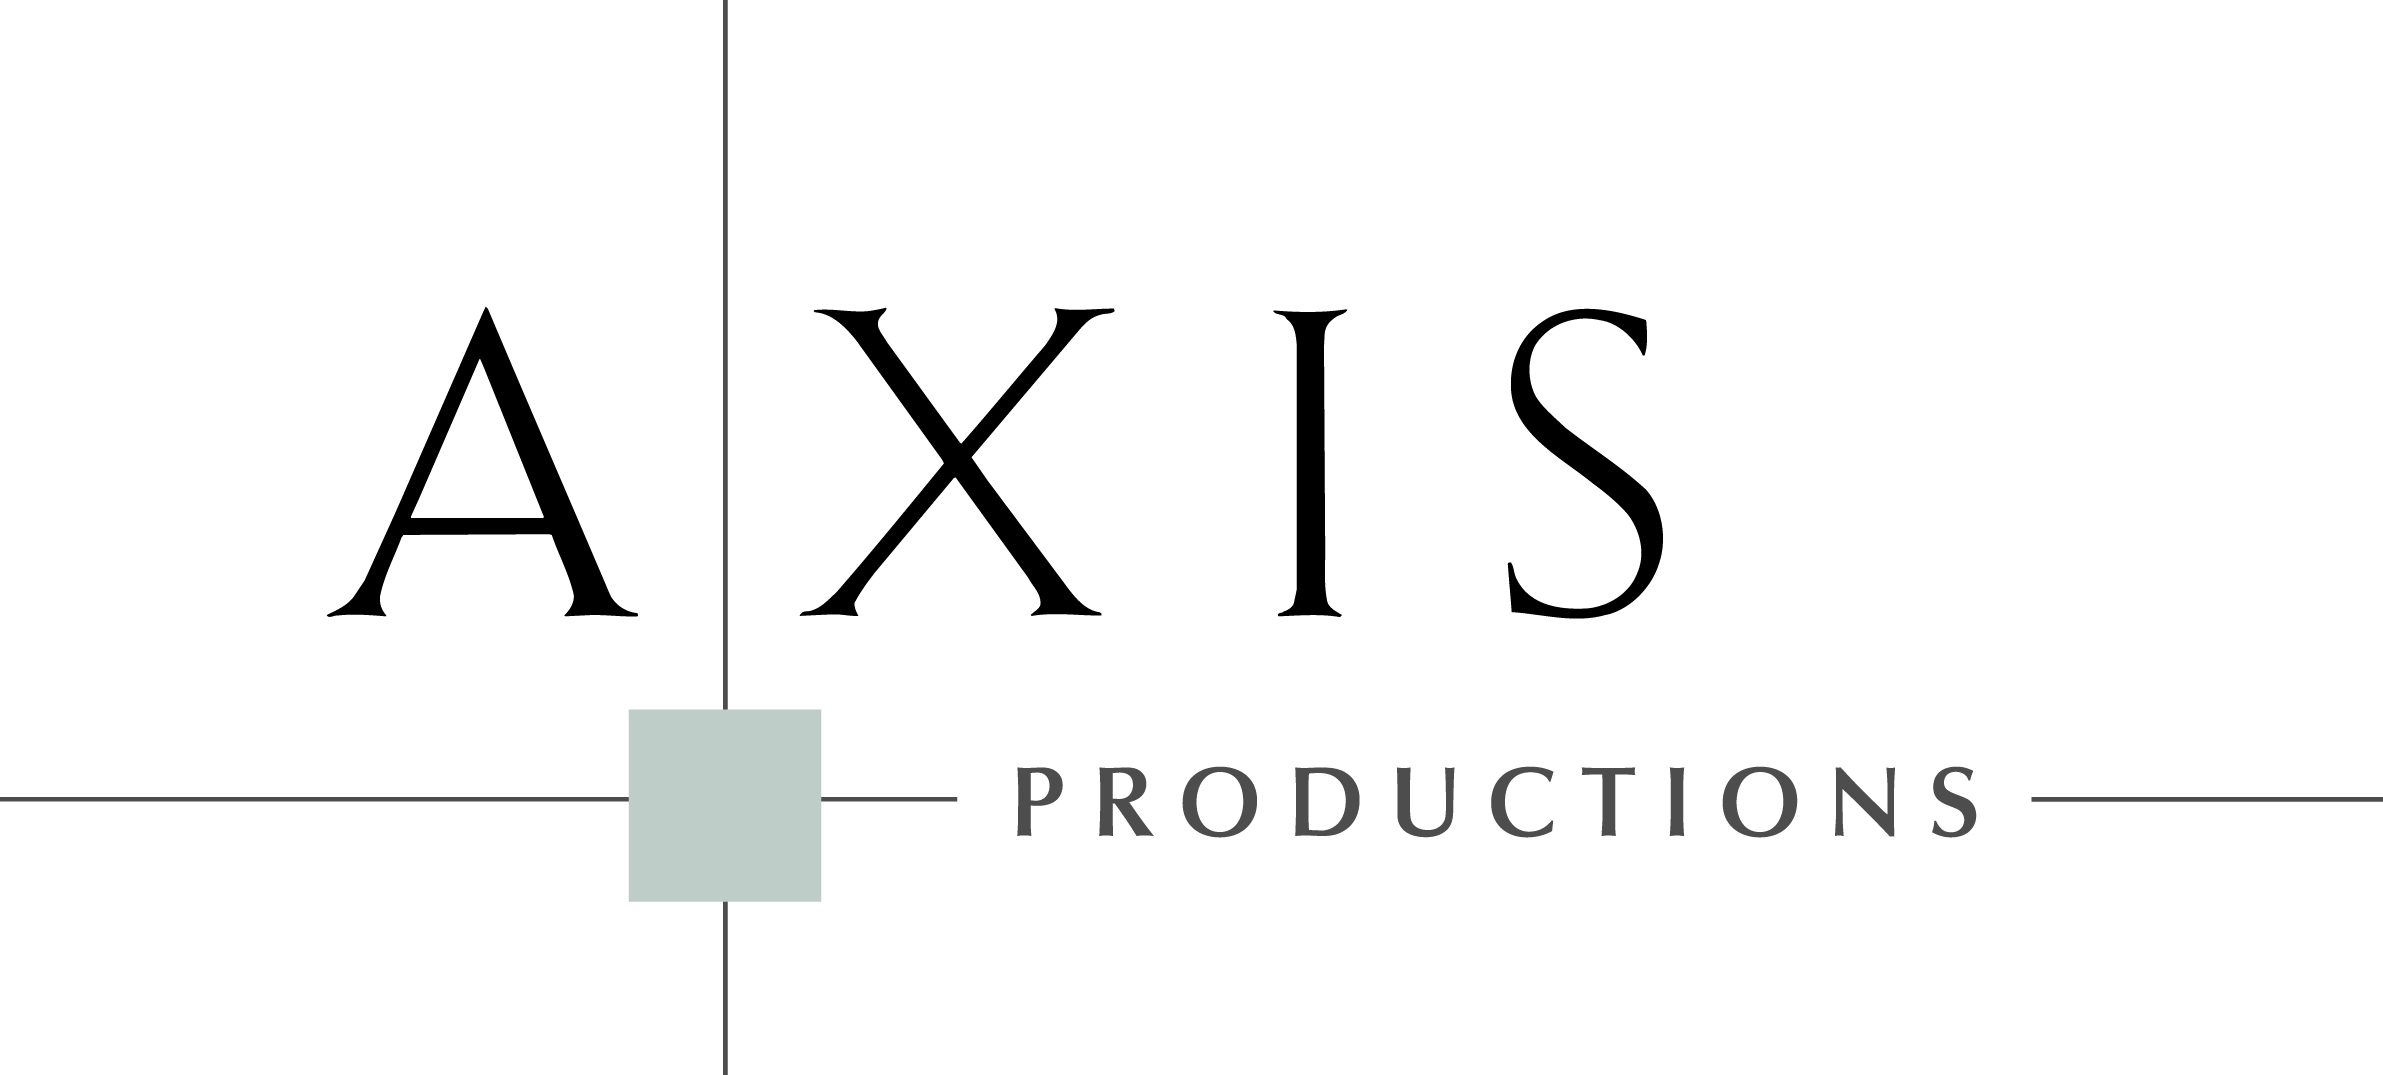 AXIS Productions logo